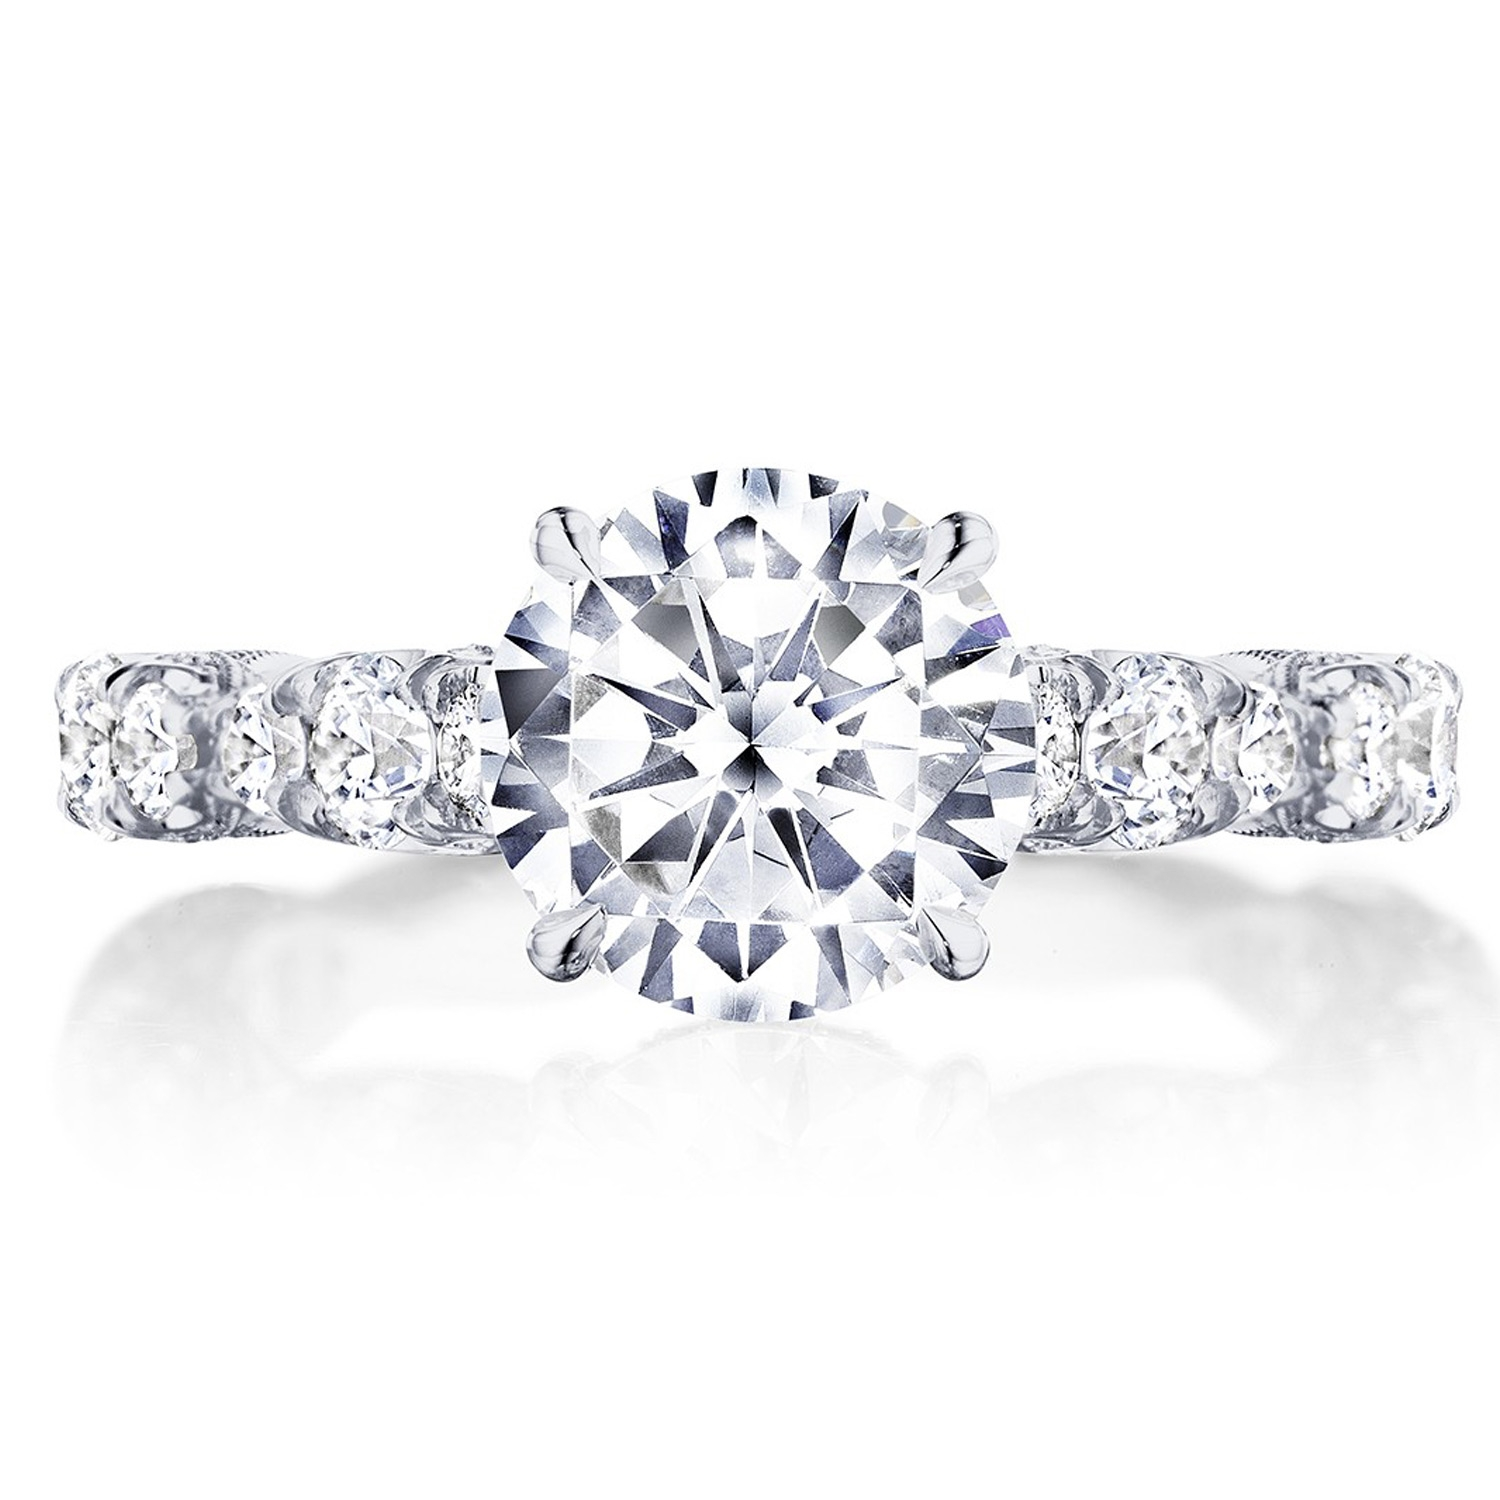 HT2654RD8 Platinum Tacori RoyalT Engagement Ring